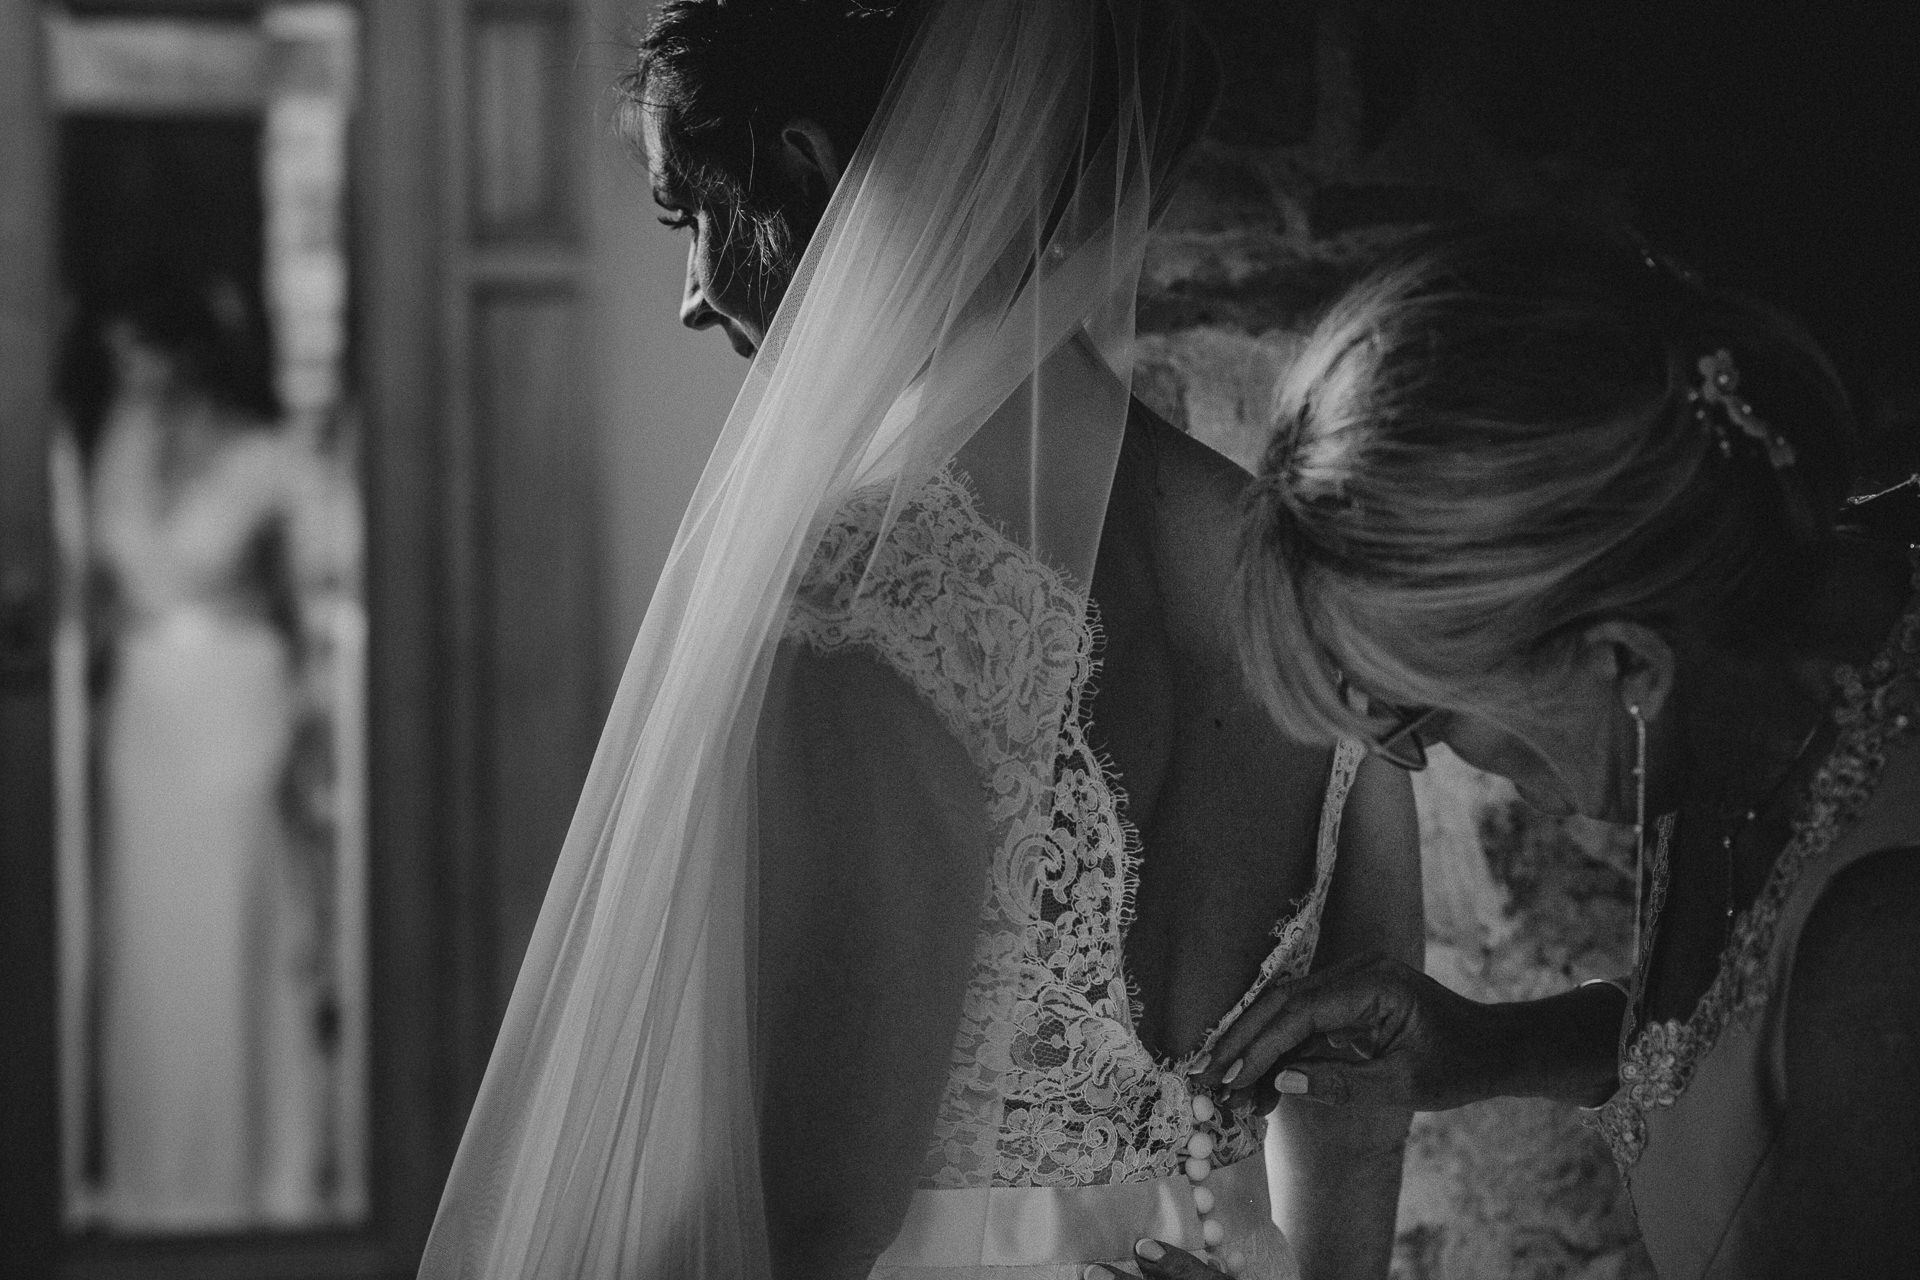 0059-DEVON-SOMERSET-WEDDING-PHOTOGRAPHER-0287-BEST-OF-2019-LOUISE-MAY-DEVON-SOMERSET-WEDDING-PHOTOGRAPHY-LM1_6346